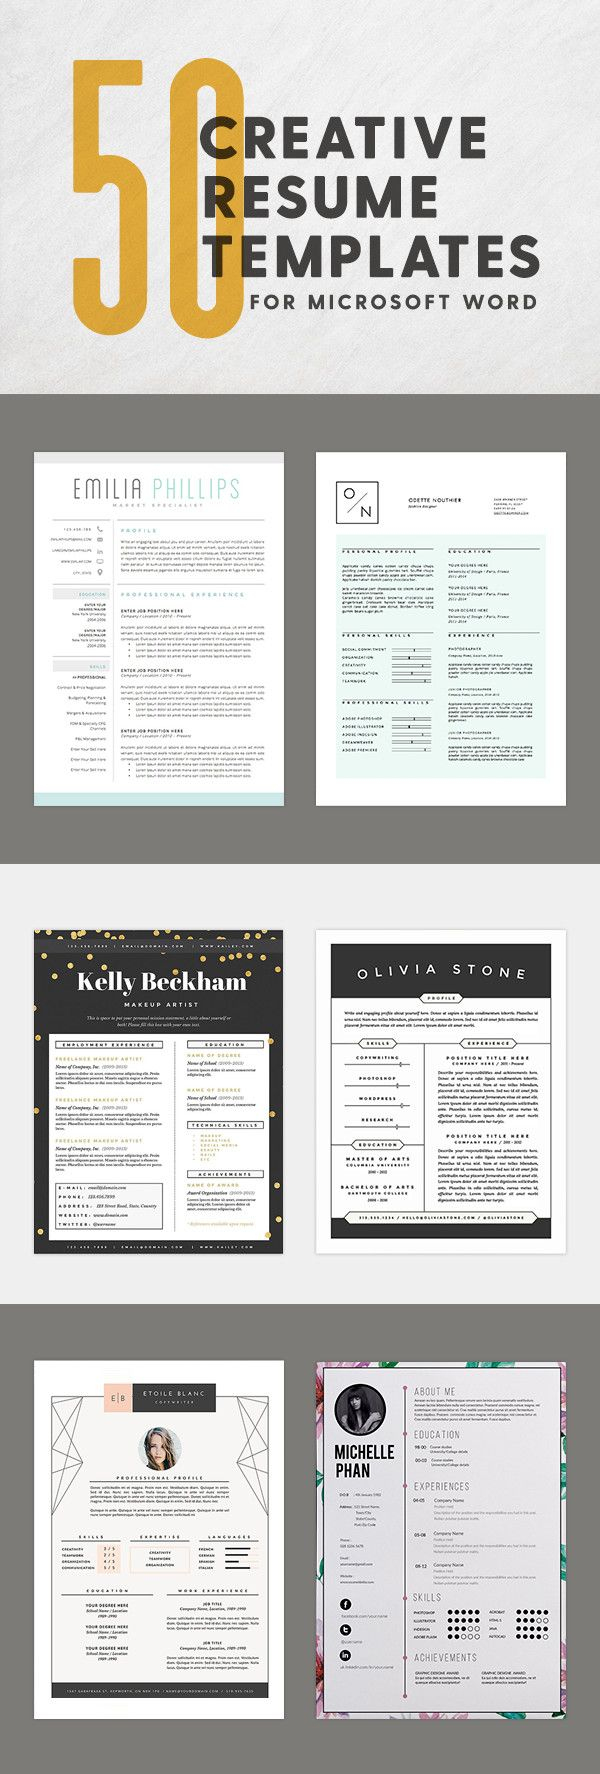 best 25 unique resume ideas on pinterest resume ideas resume